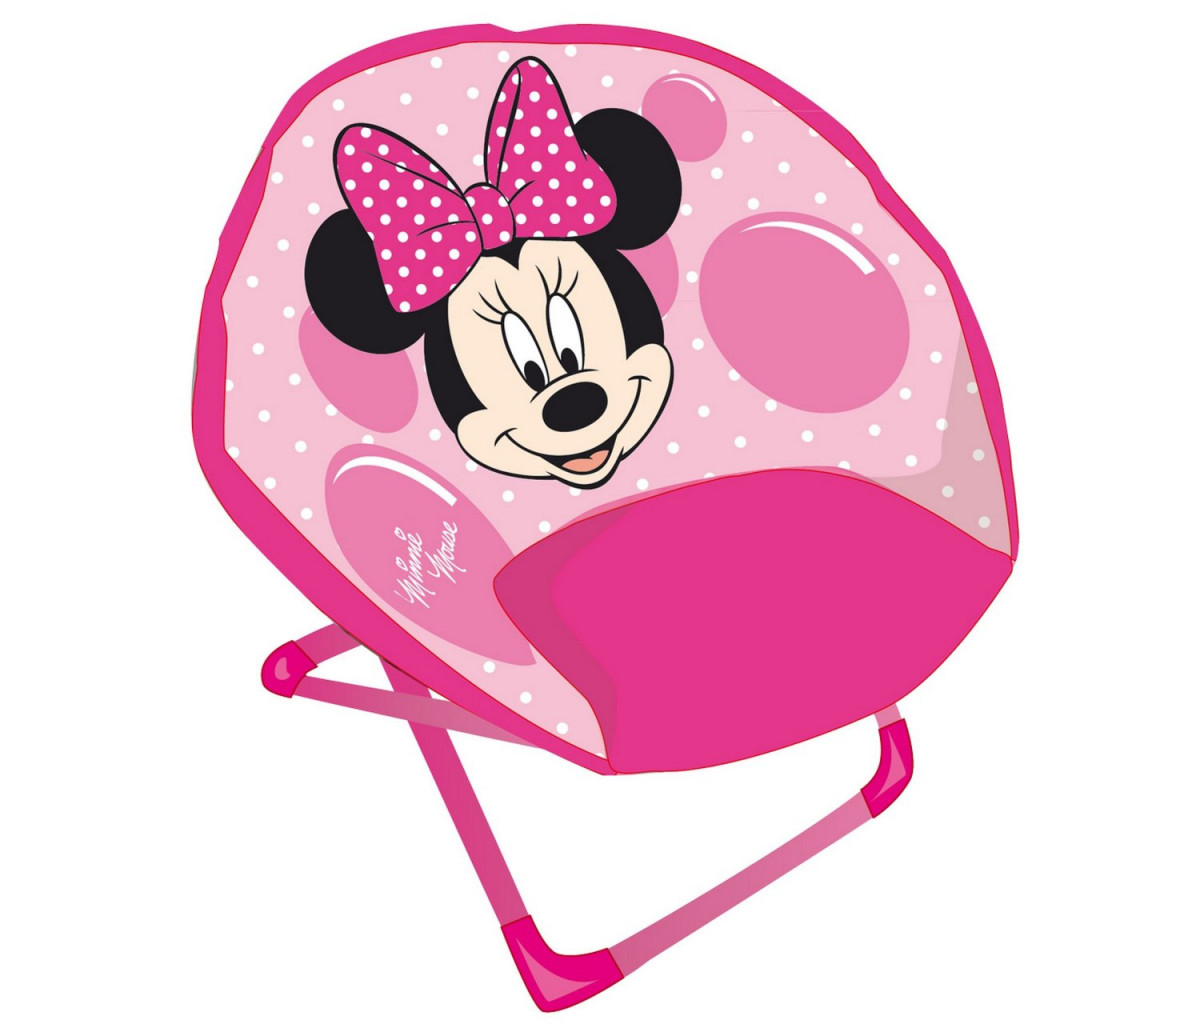 Siège lune Rose Minnie Mouse Disney